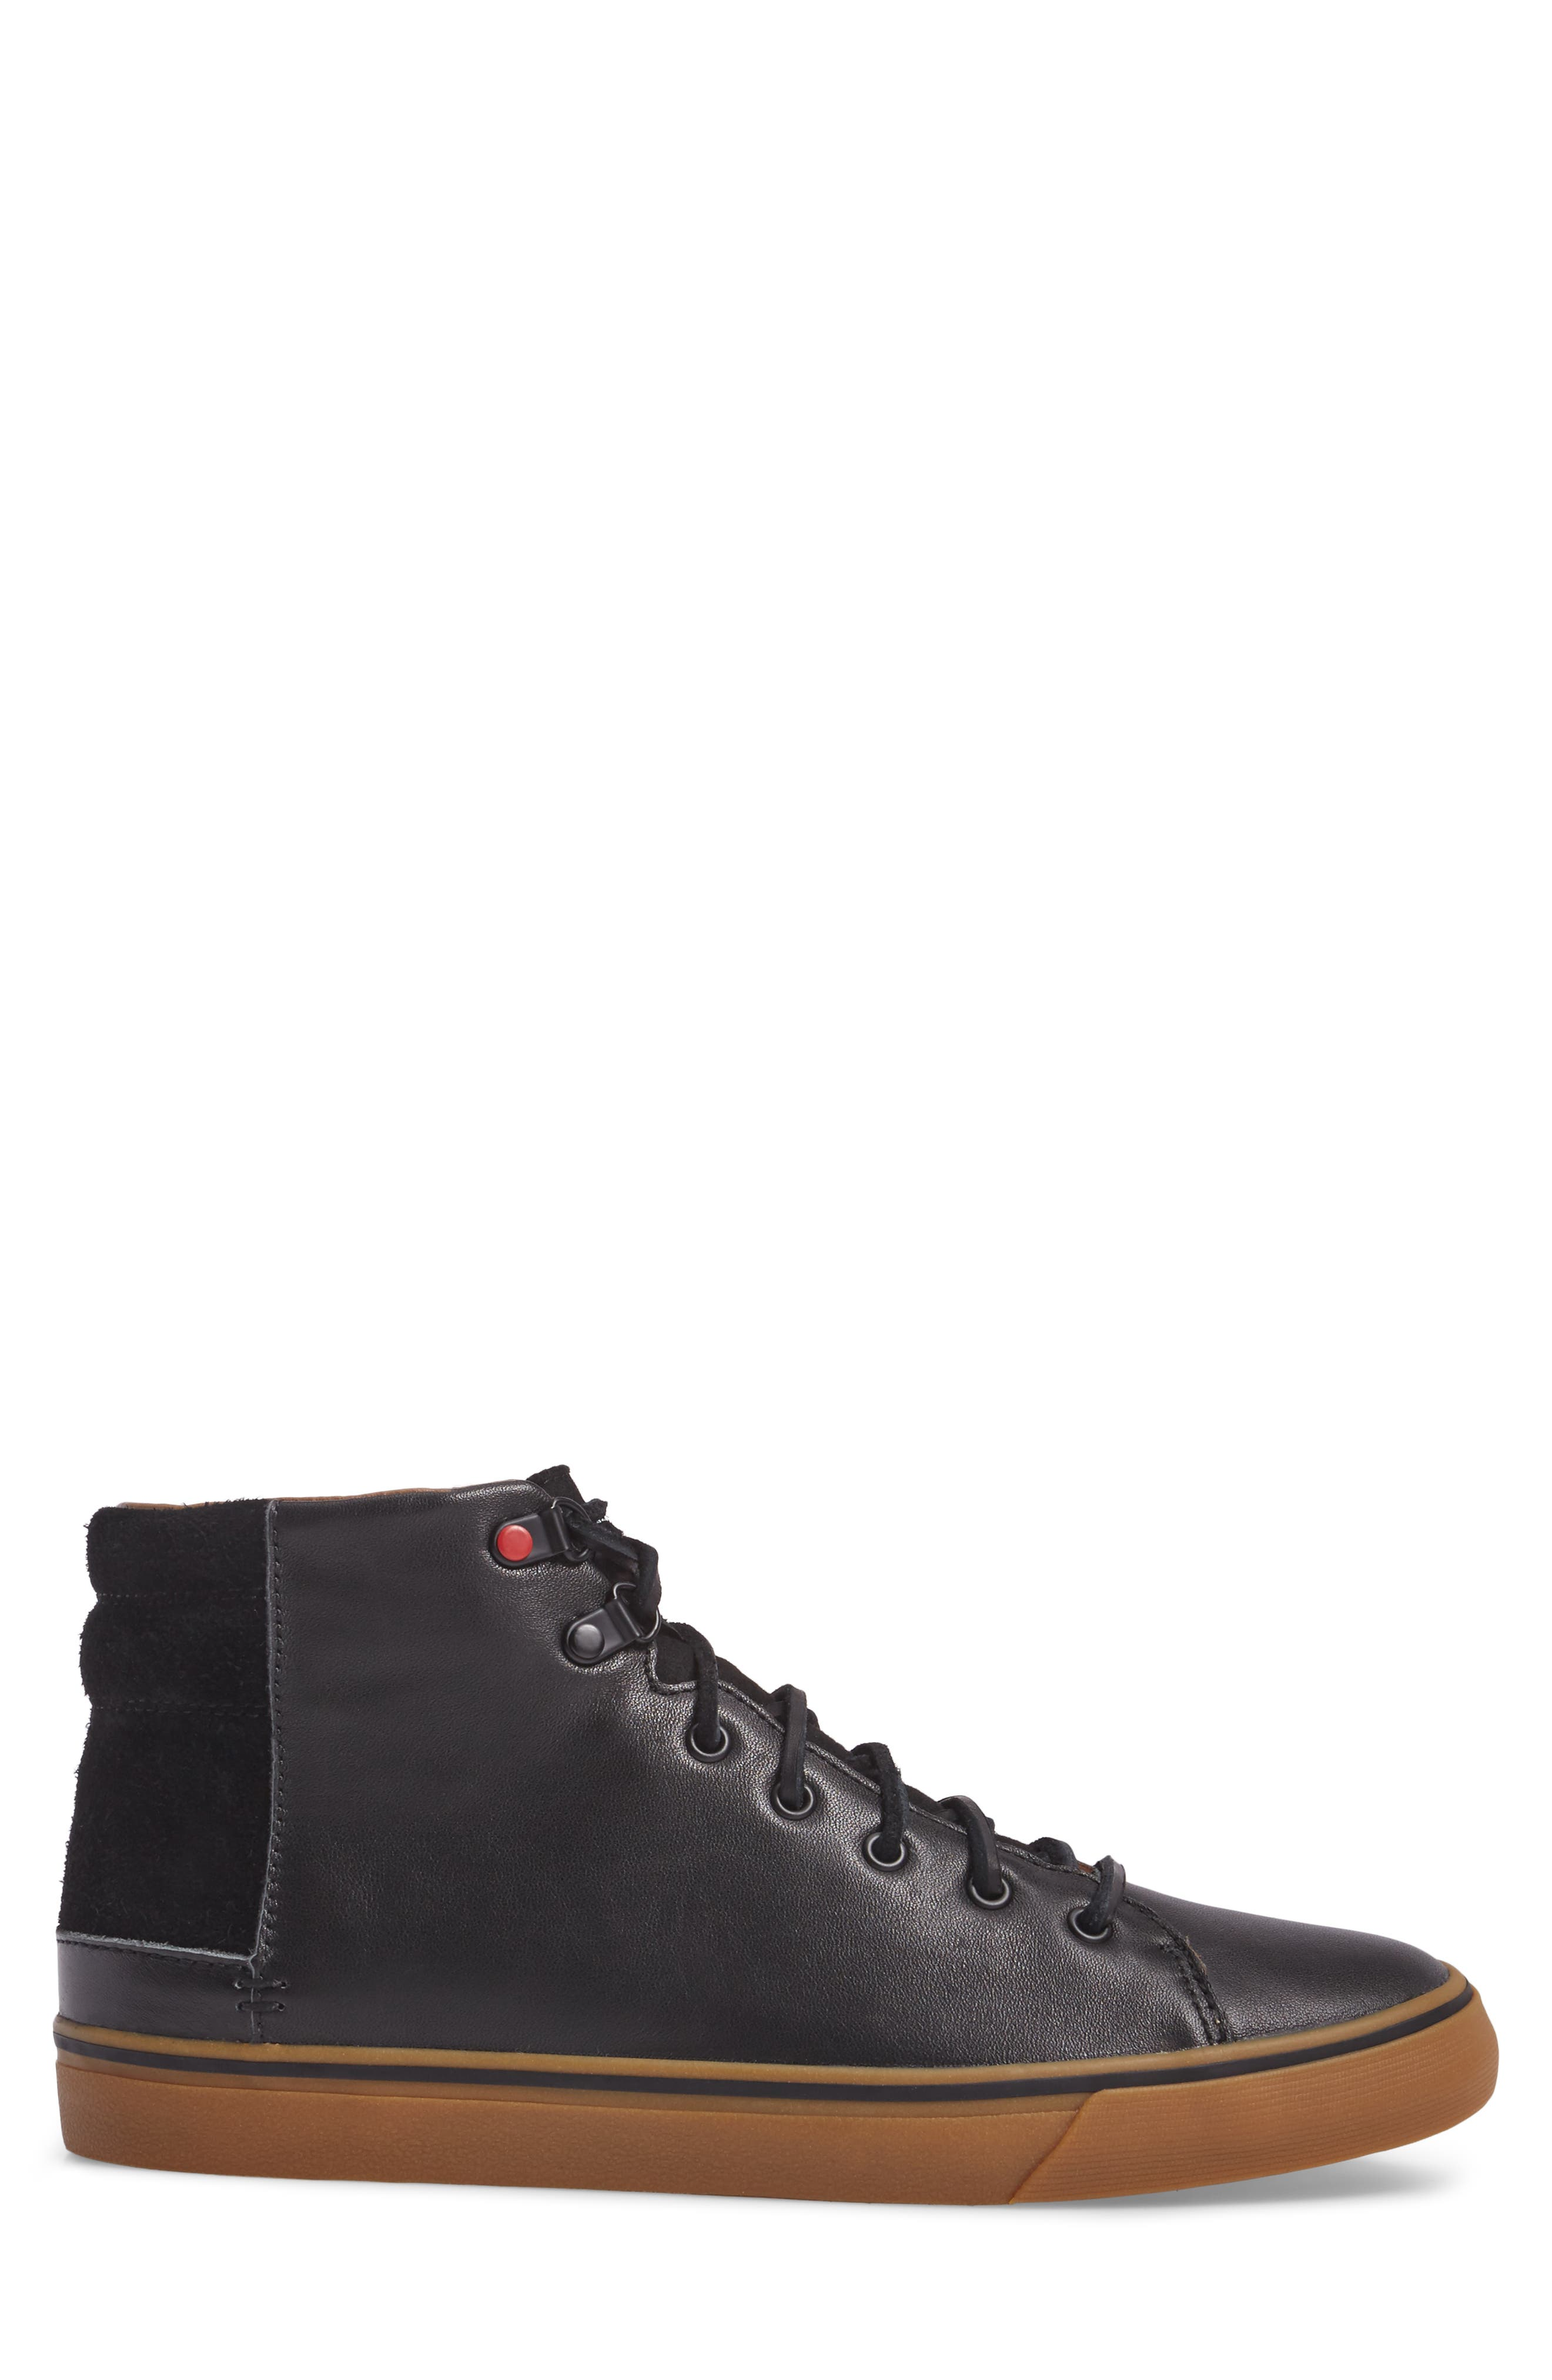 Hoyt Luxe Genuine Shearling High Top Sneaker,                             Alternate thumbnail 3, color,                             001